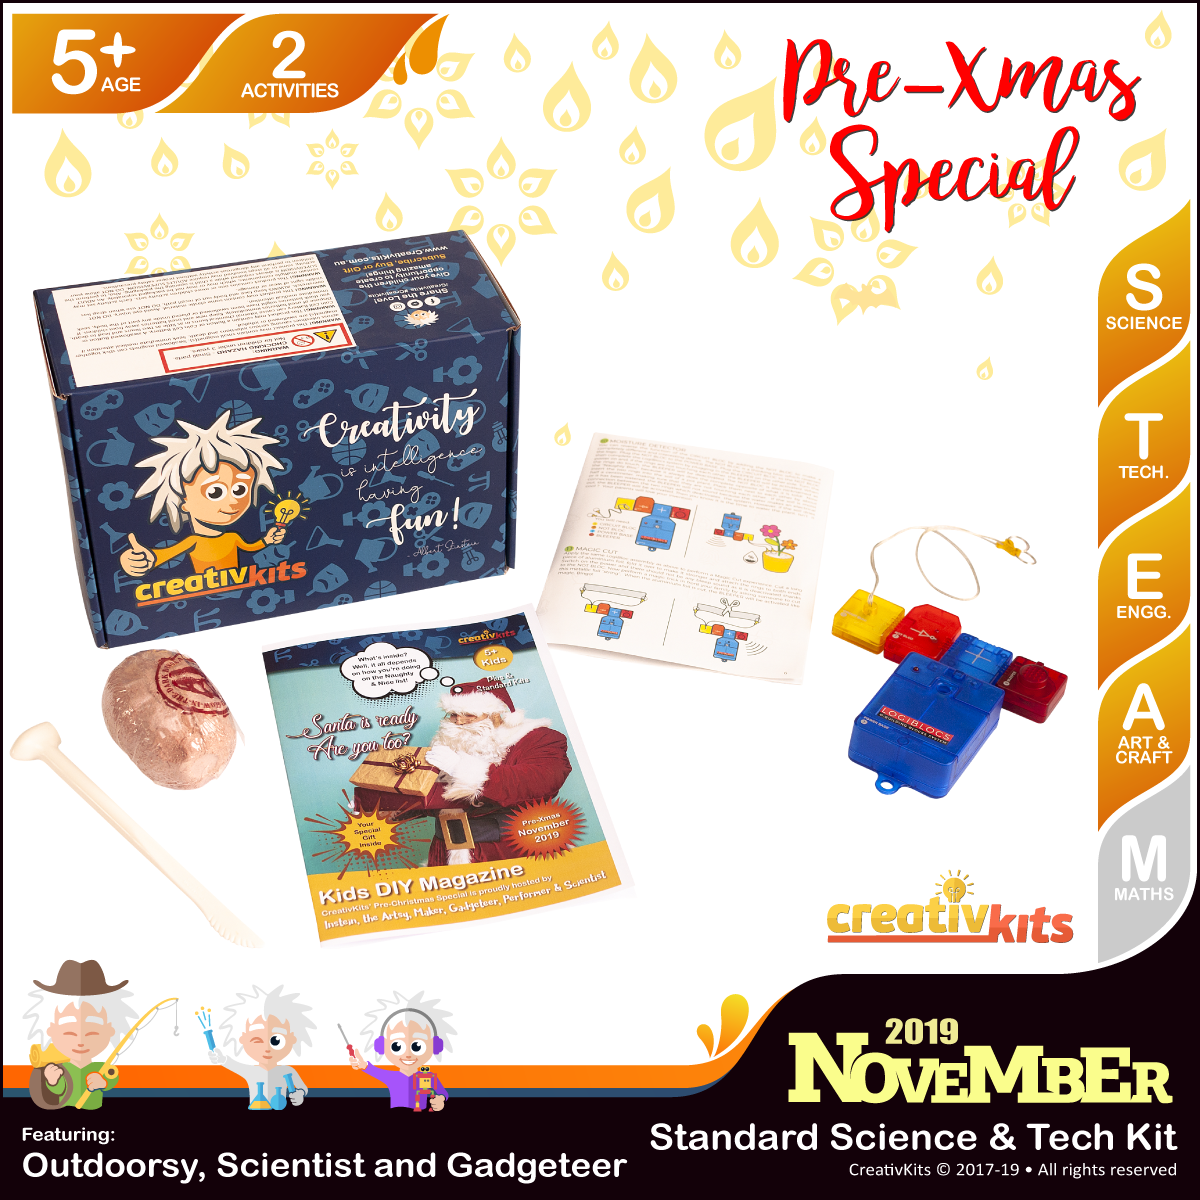 November Standard Science & Tech. Kit • Age 5 plus • LogiBlocs Smart Circuit and Dig Glow Dinosaur